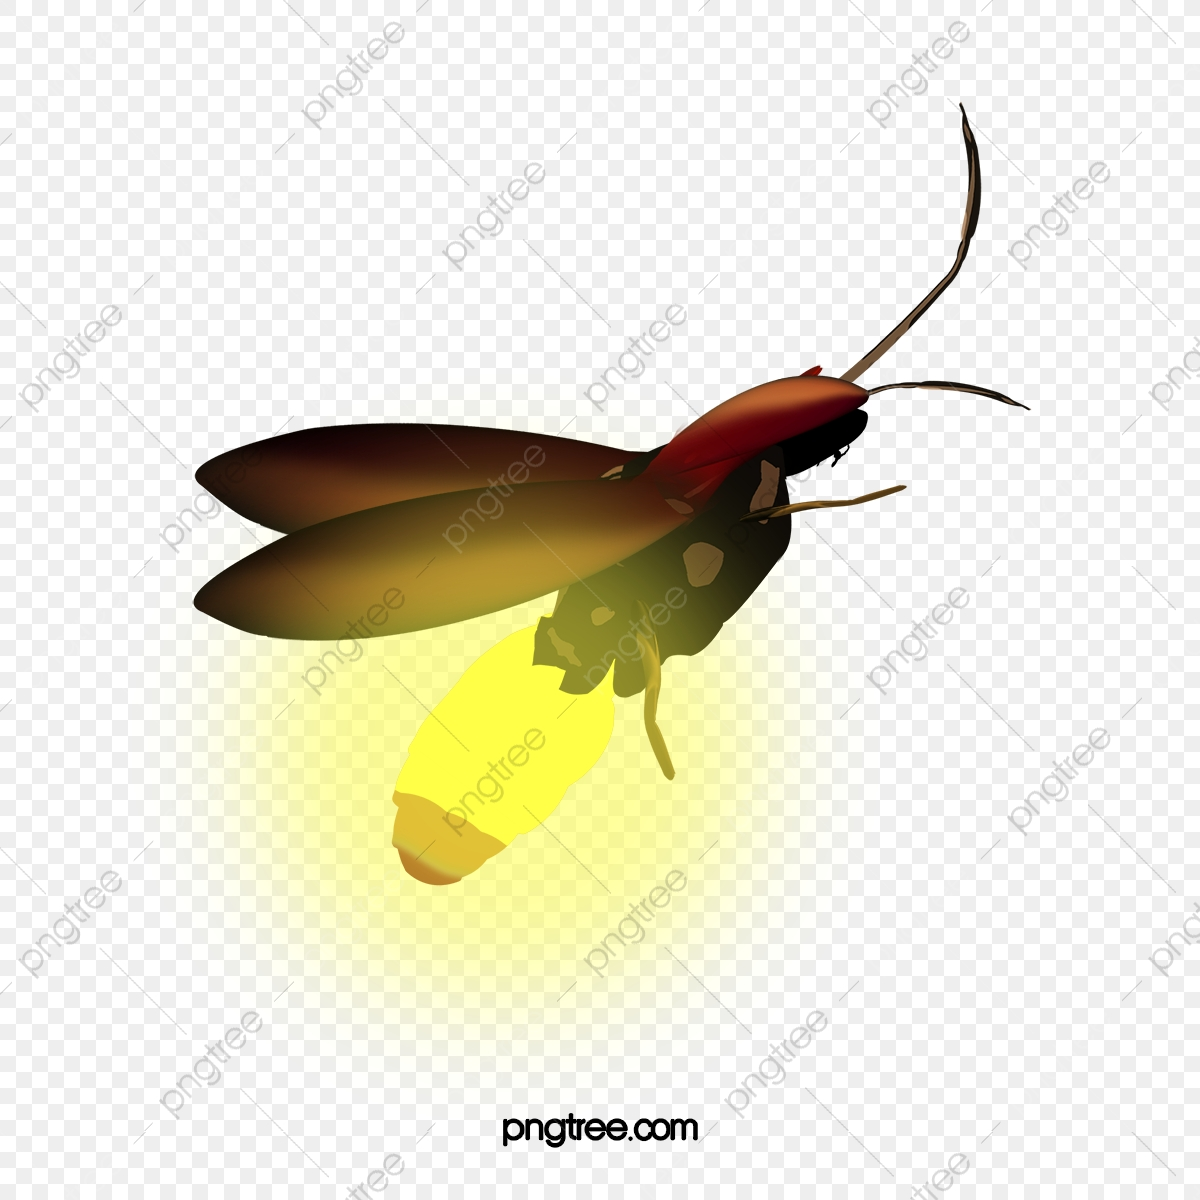 A Firefly, Firefly Clipart, In Kind, Light PNG Transparent Clipart.